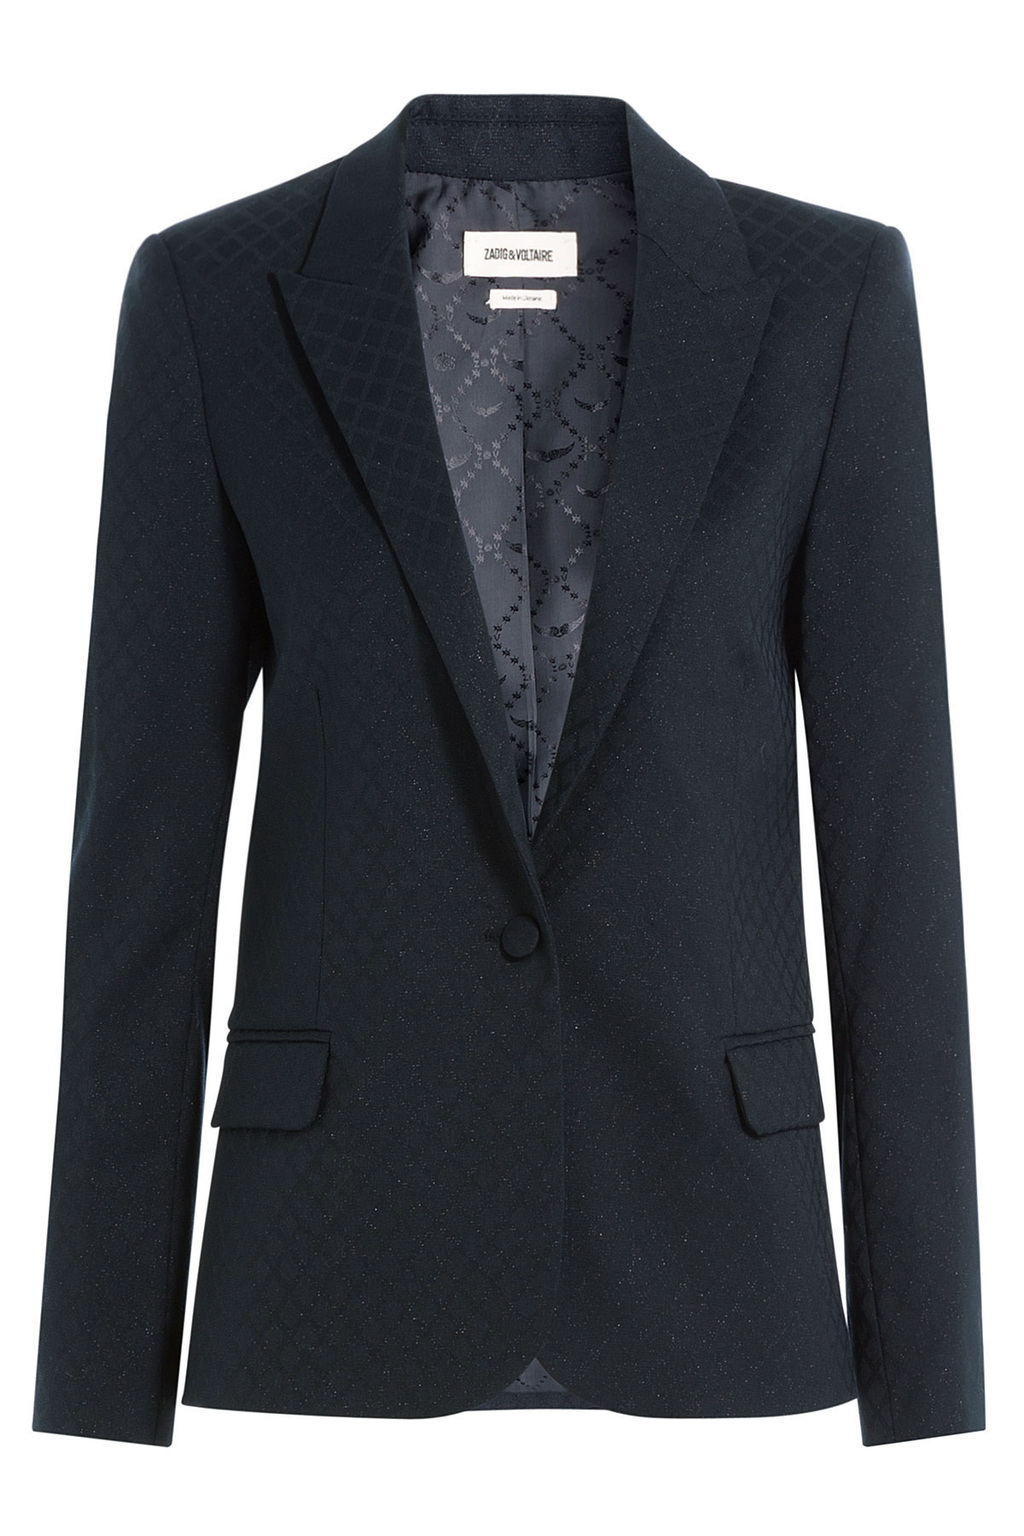 Tailored Blazer With Wool Black - pattern: plain; style: single breasted blazer; collar: standard lapel/rever collar; predominant colour: black; occasions: work; length: standard; fit: tailored/fitted; fibres: wool - mix; sleeve length: long sleeve; sleeve style: standard; collar break: low/open; pattern type: fabric; texture group: other - light to midweight; wardrobe: investment; season: a/w 2016